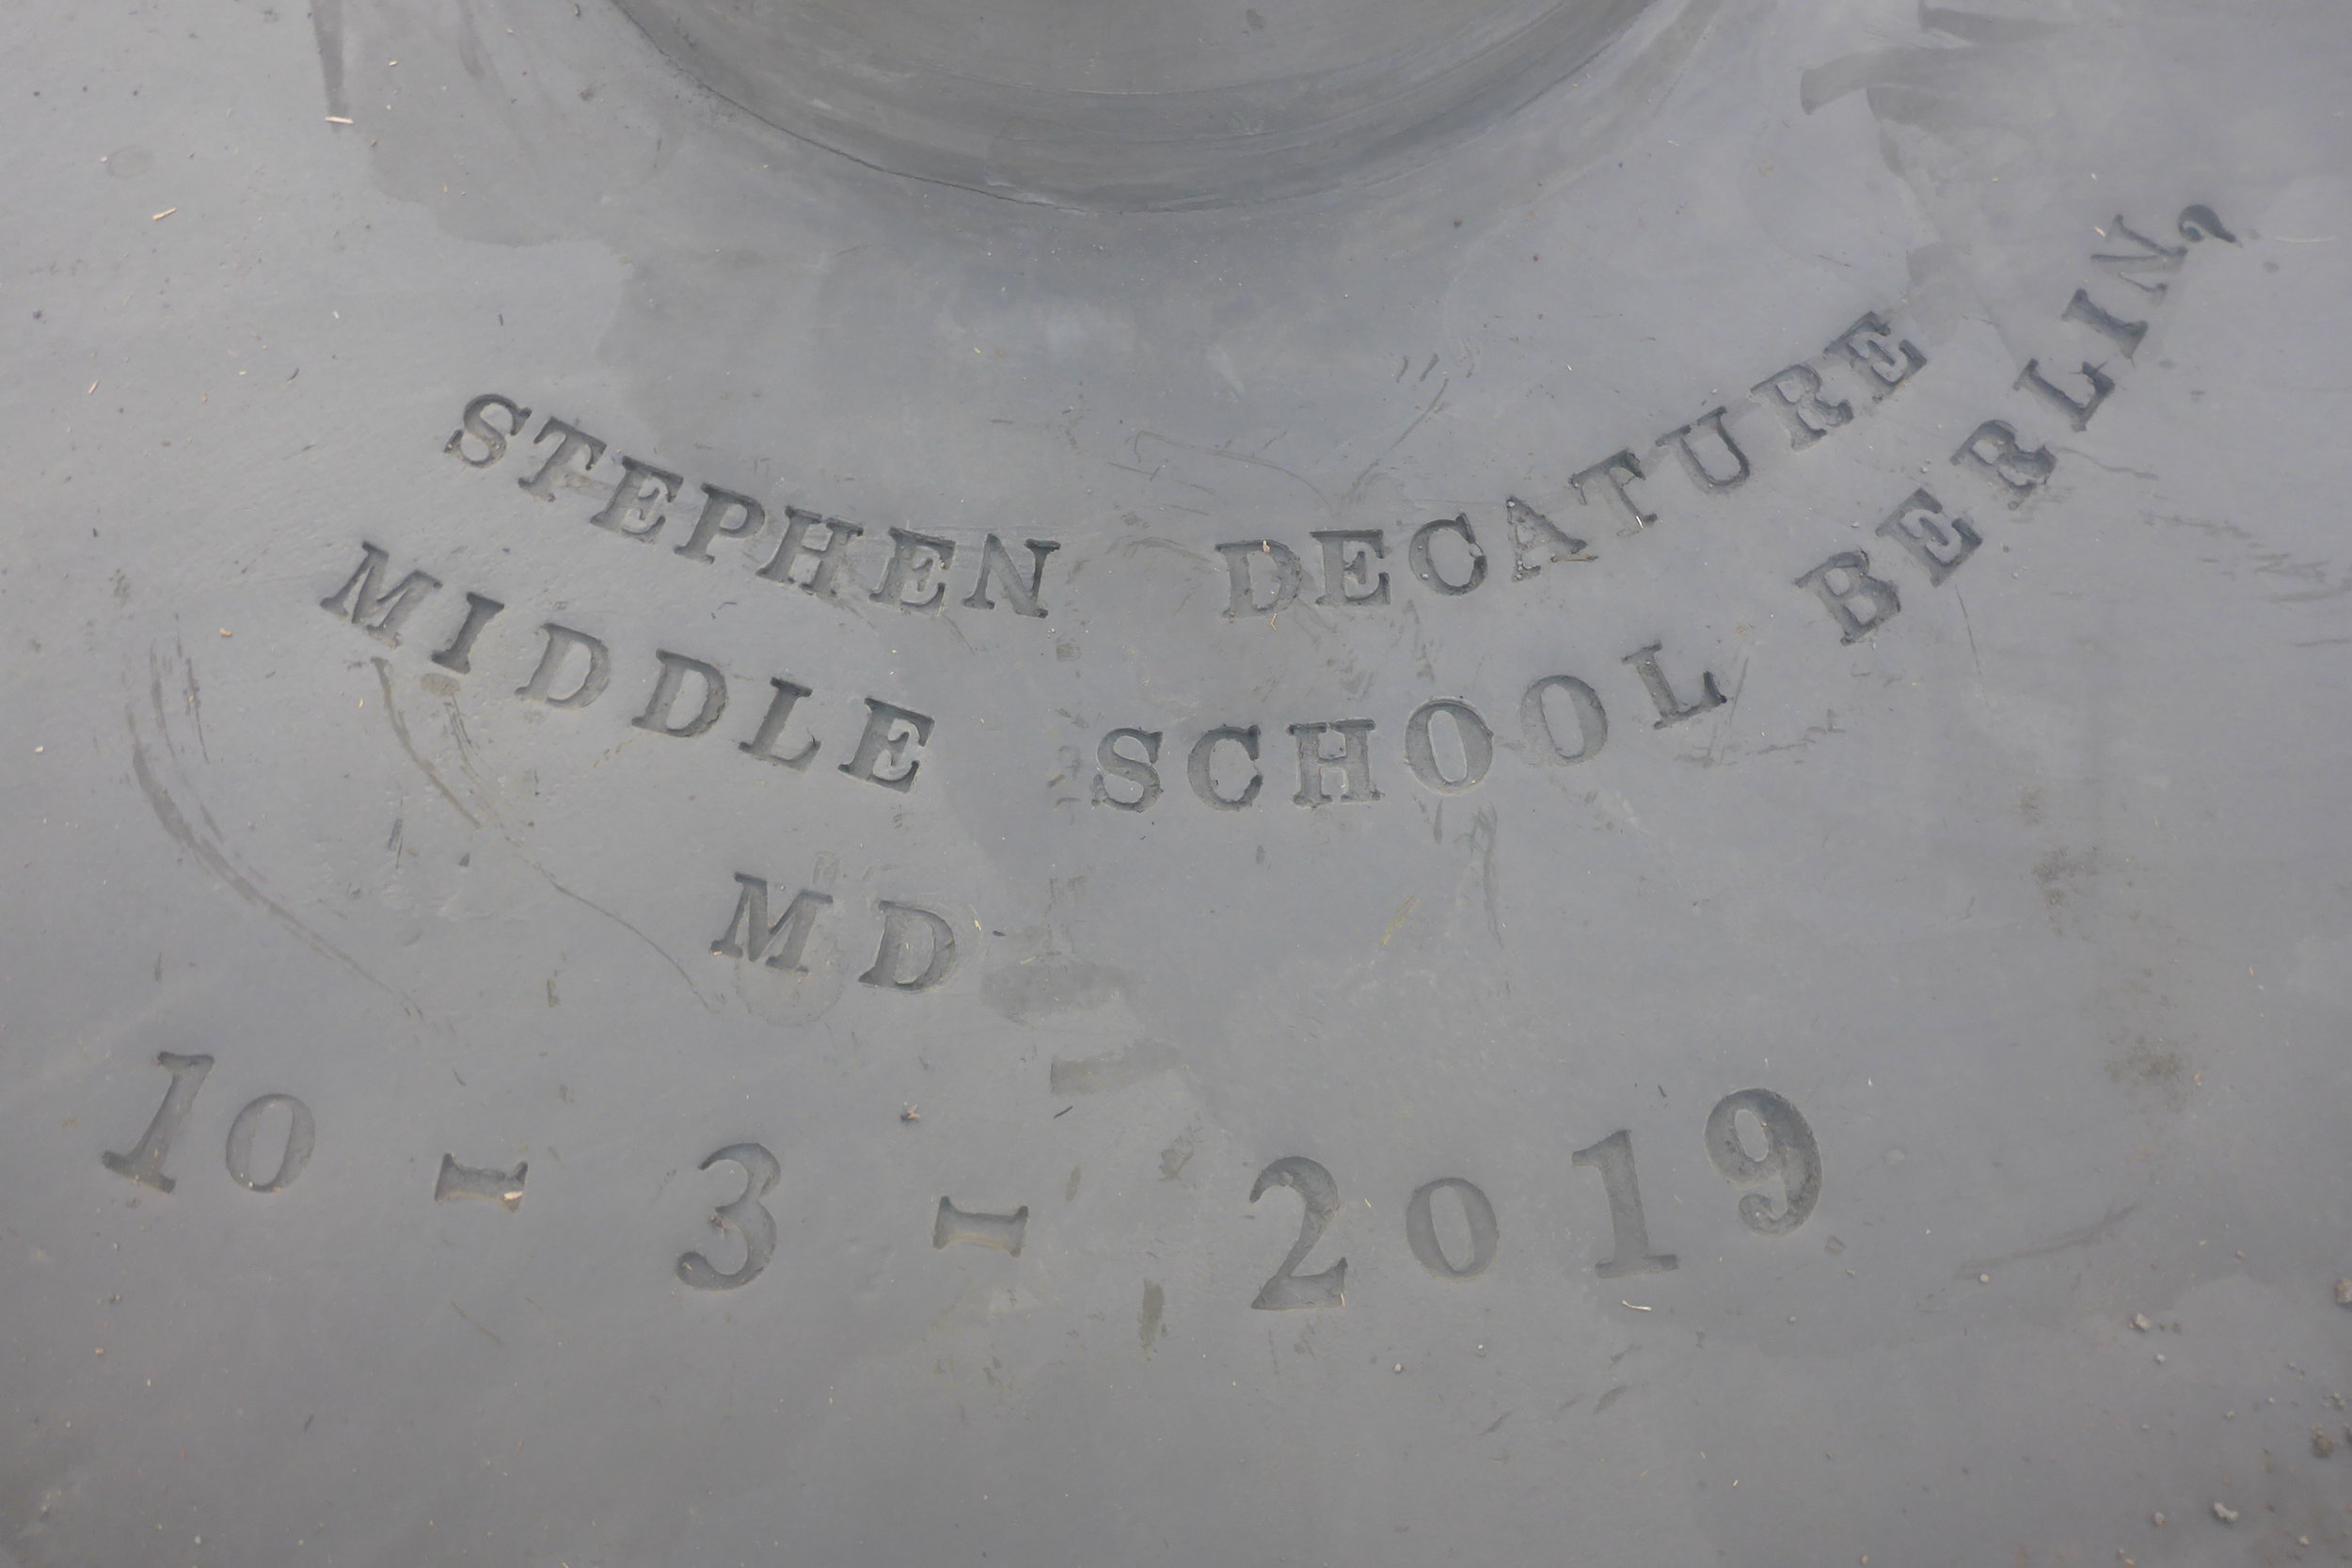 Stephen Decature Middle School Berlin.JPG